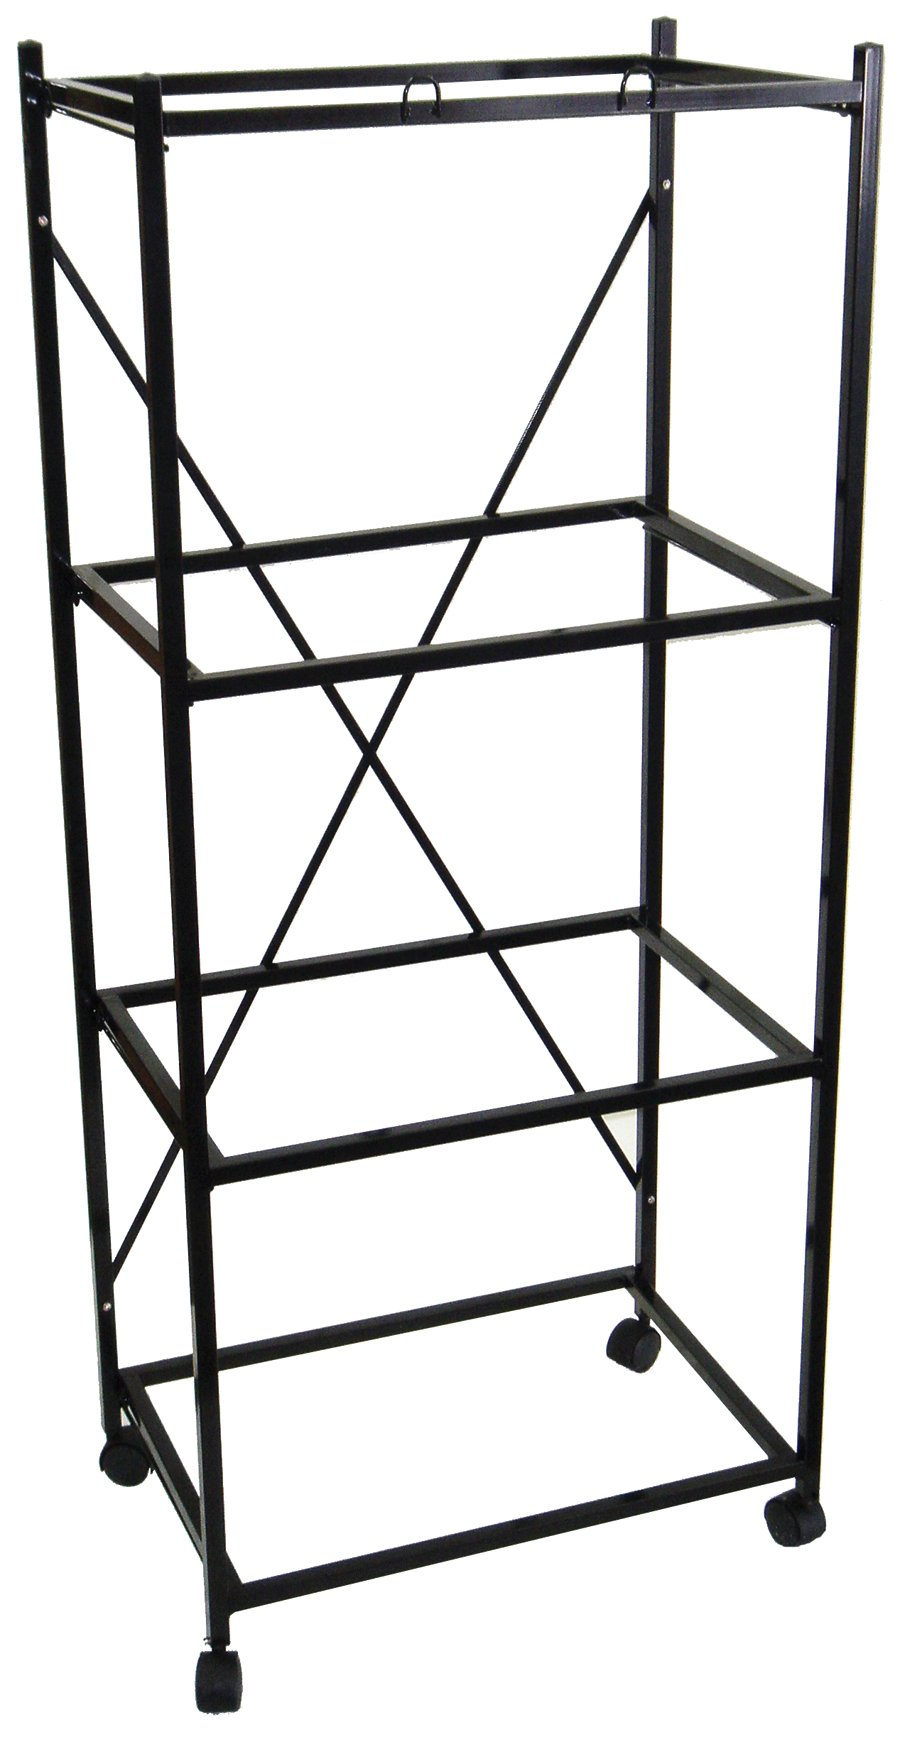 YML 4-Shelves Stand for Pet Cages, Black by YML